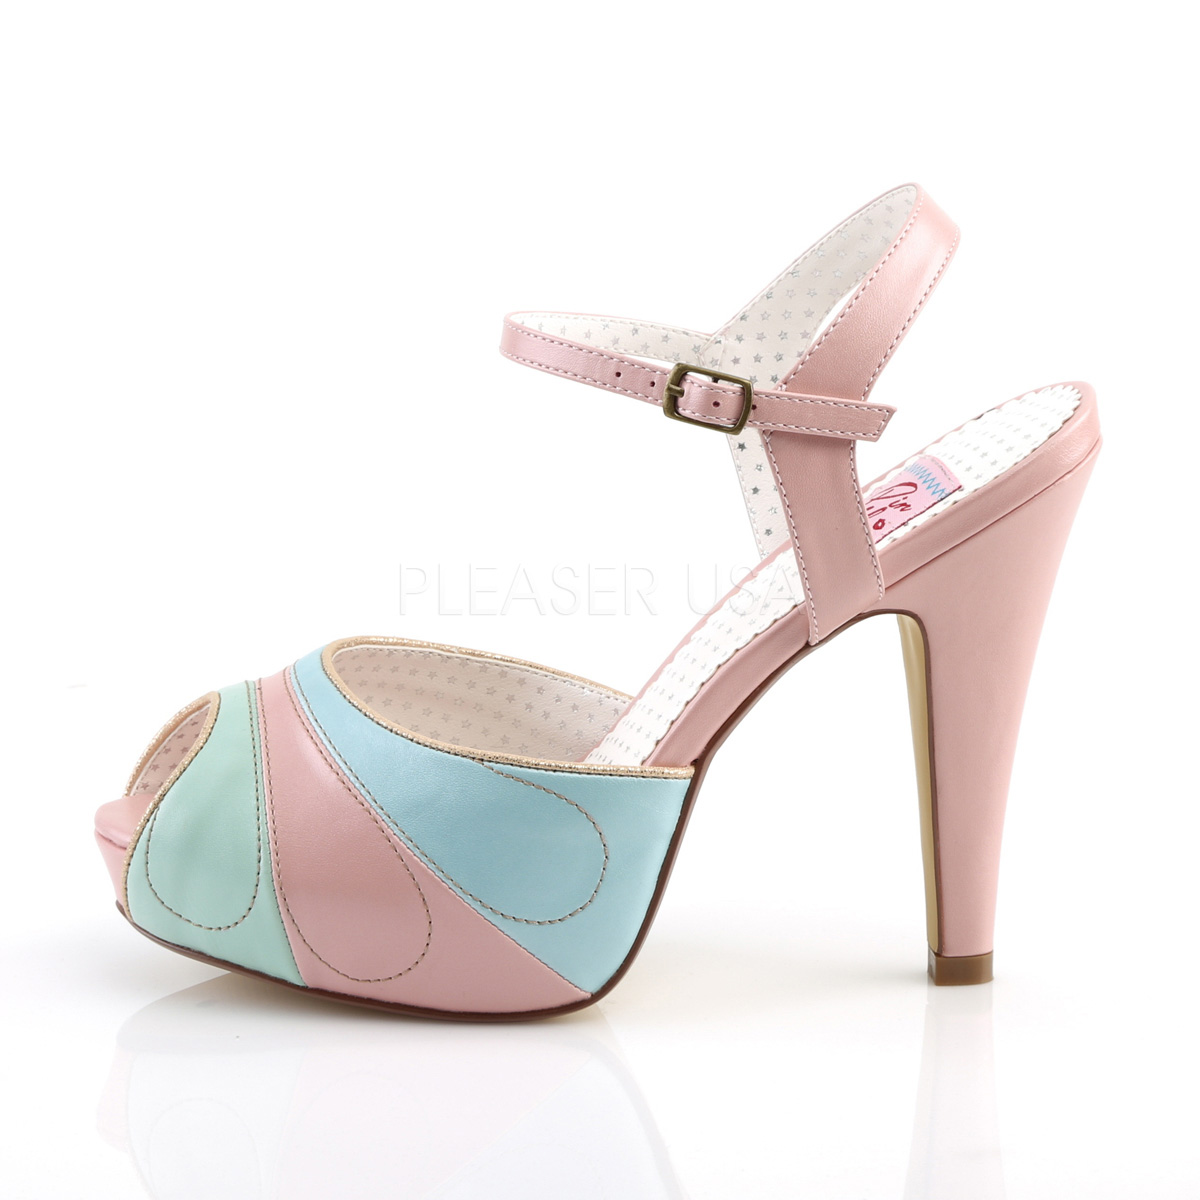 newest 85adf a4805 ... Retro Sandal BETTIE-27 - Pink ...